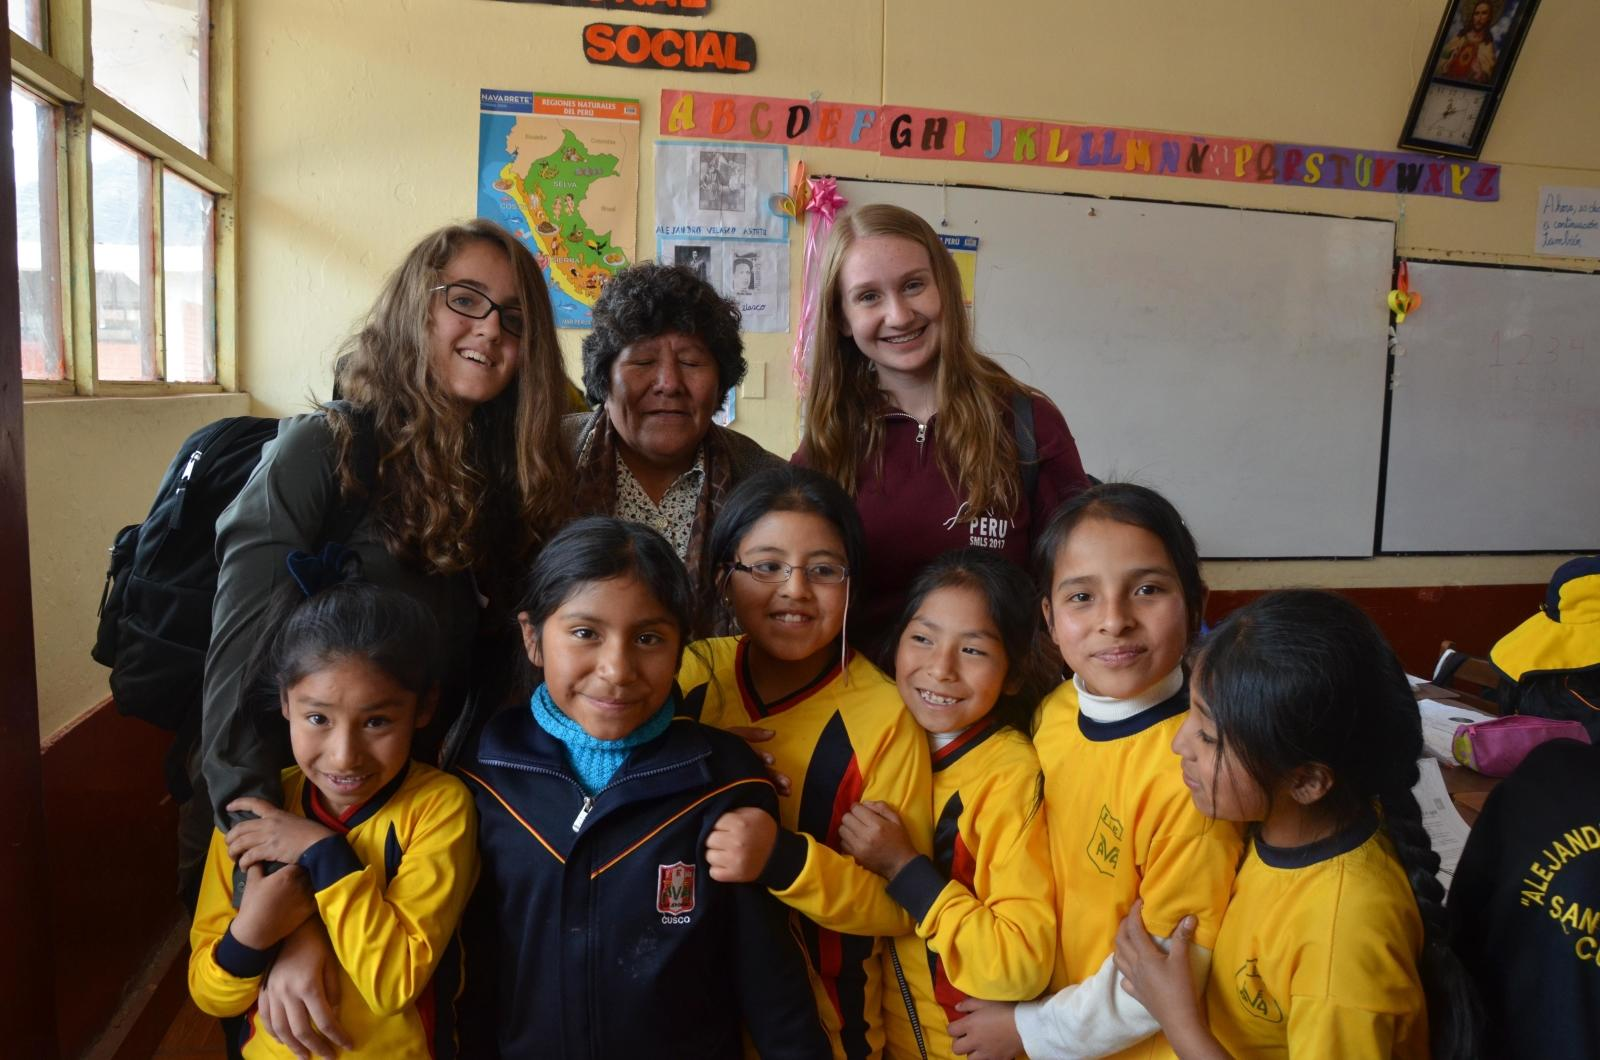 Projects Abroad volunteers posing with kids and their teacher at school during their spring break in Peru.